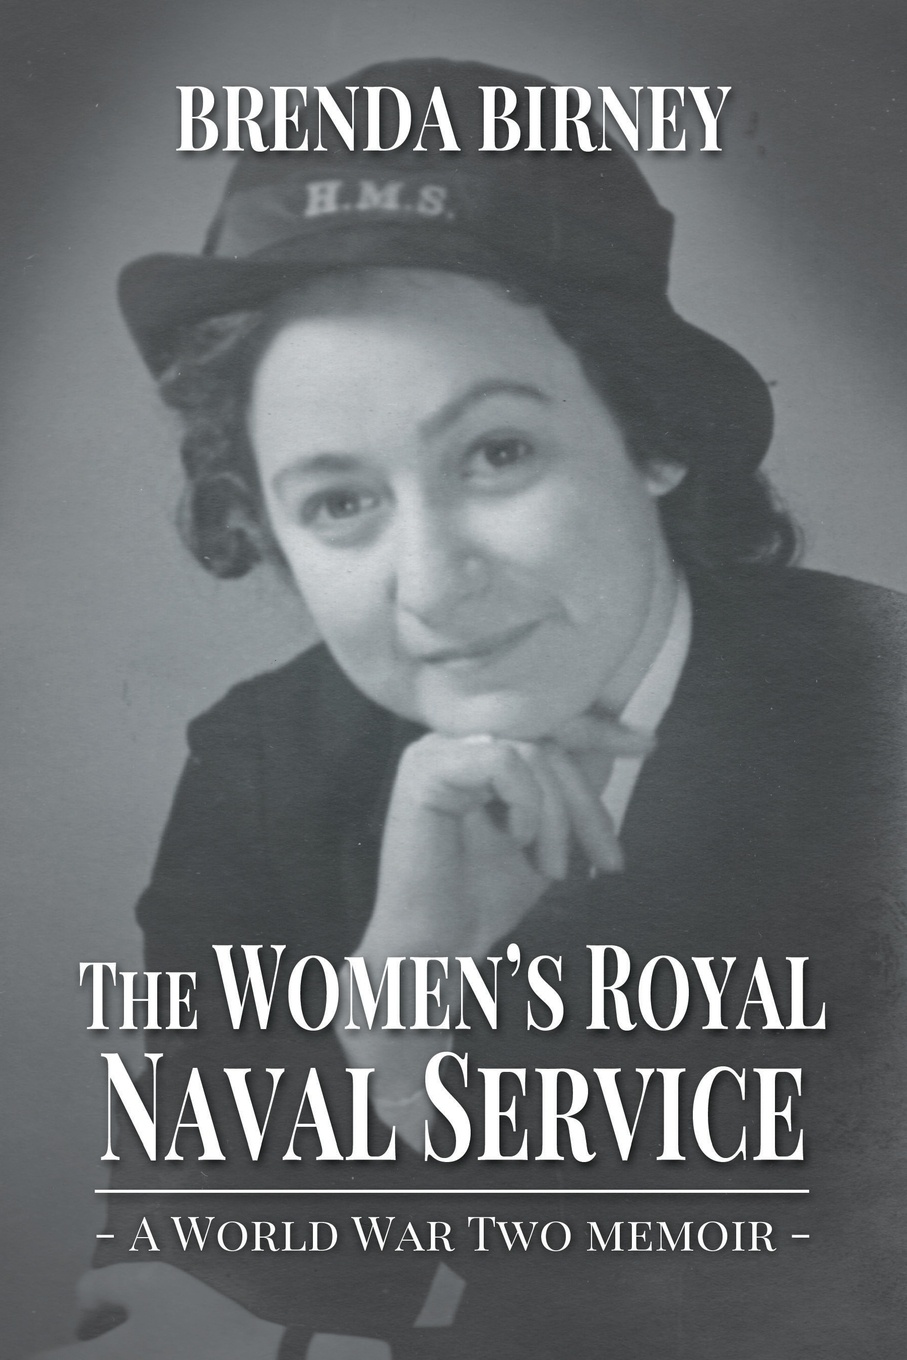 бренда ли brenda lee brenda that s all all alone am i Brenda Birney The Womens Royal Naval Service. a World War Two Memoir